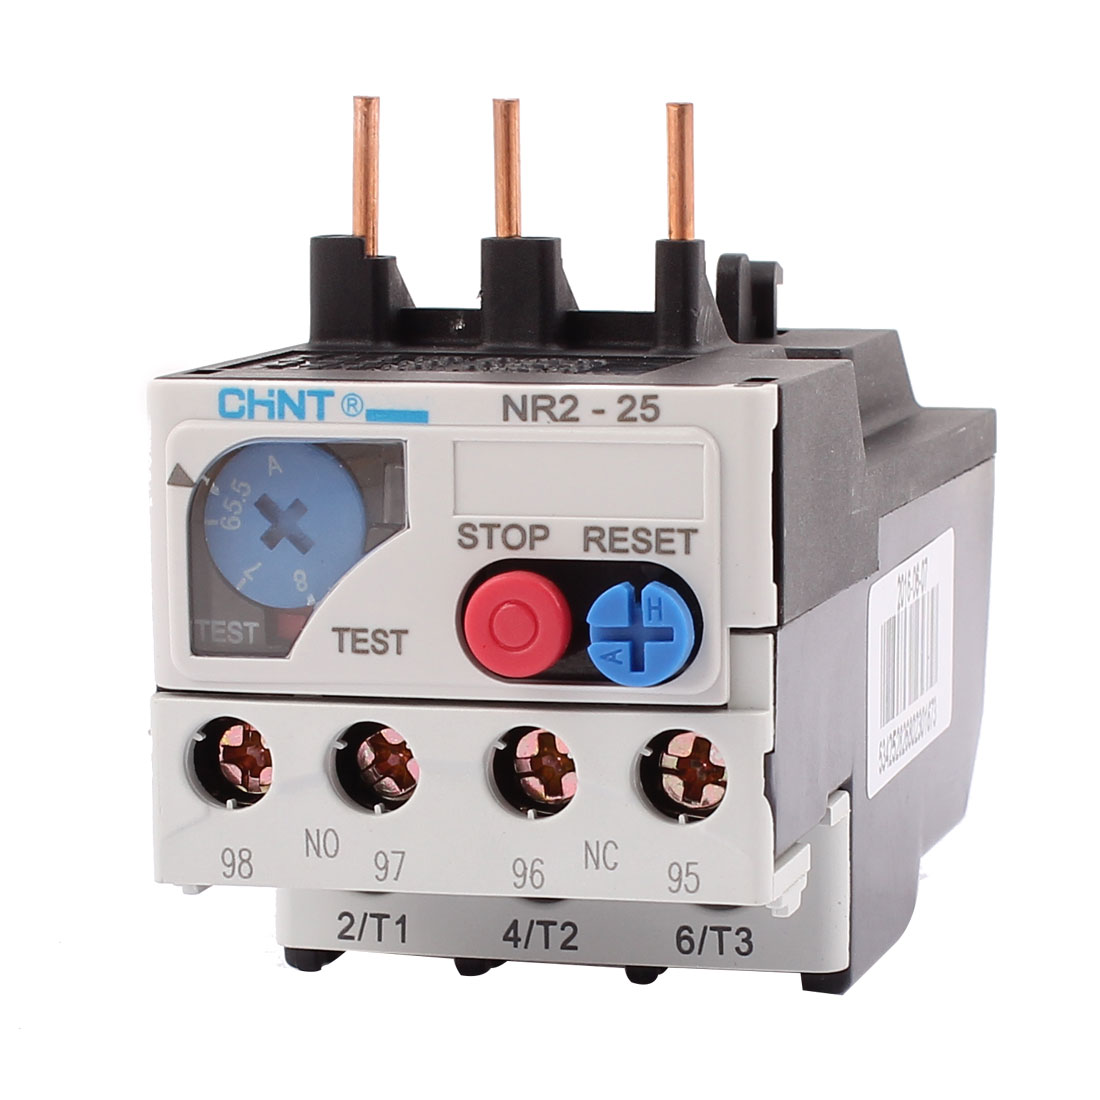 NR2-25 5.5-8A 3 Pole 1 NO 1 NC Motor Protector Electric Thermal Overload Relay